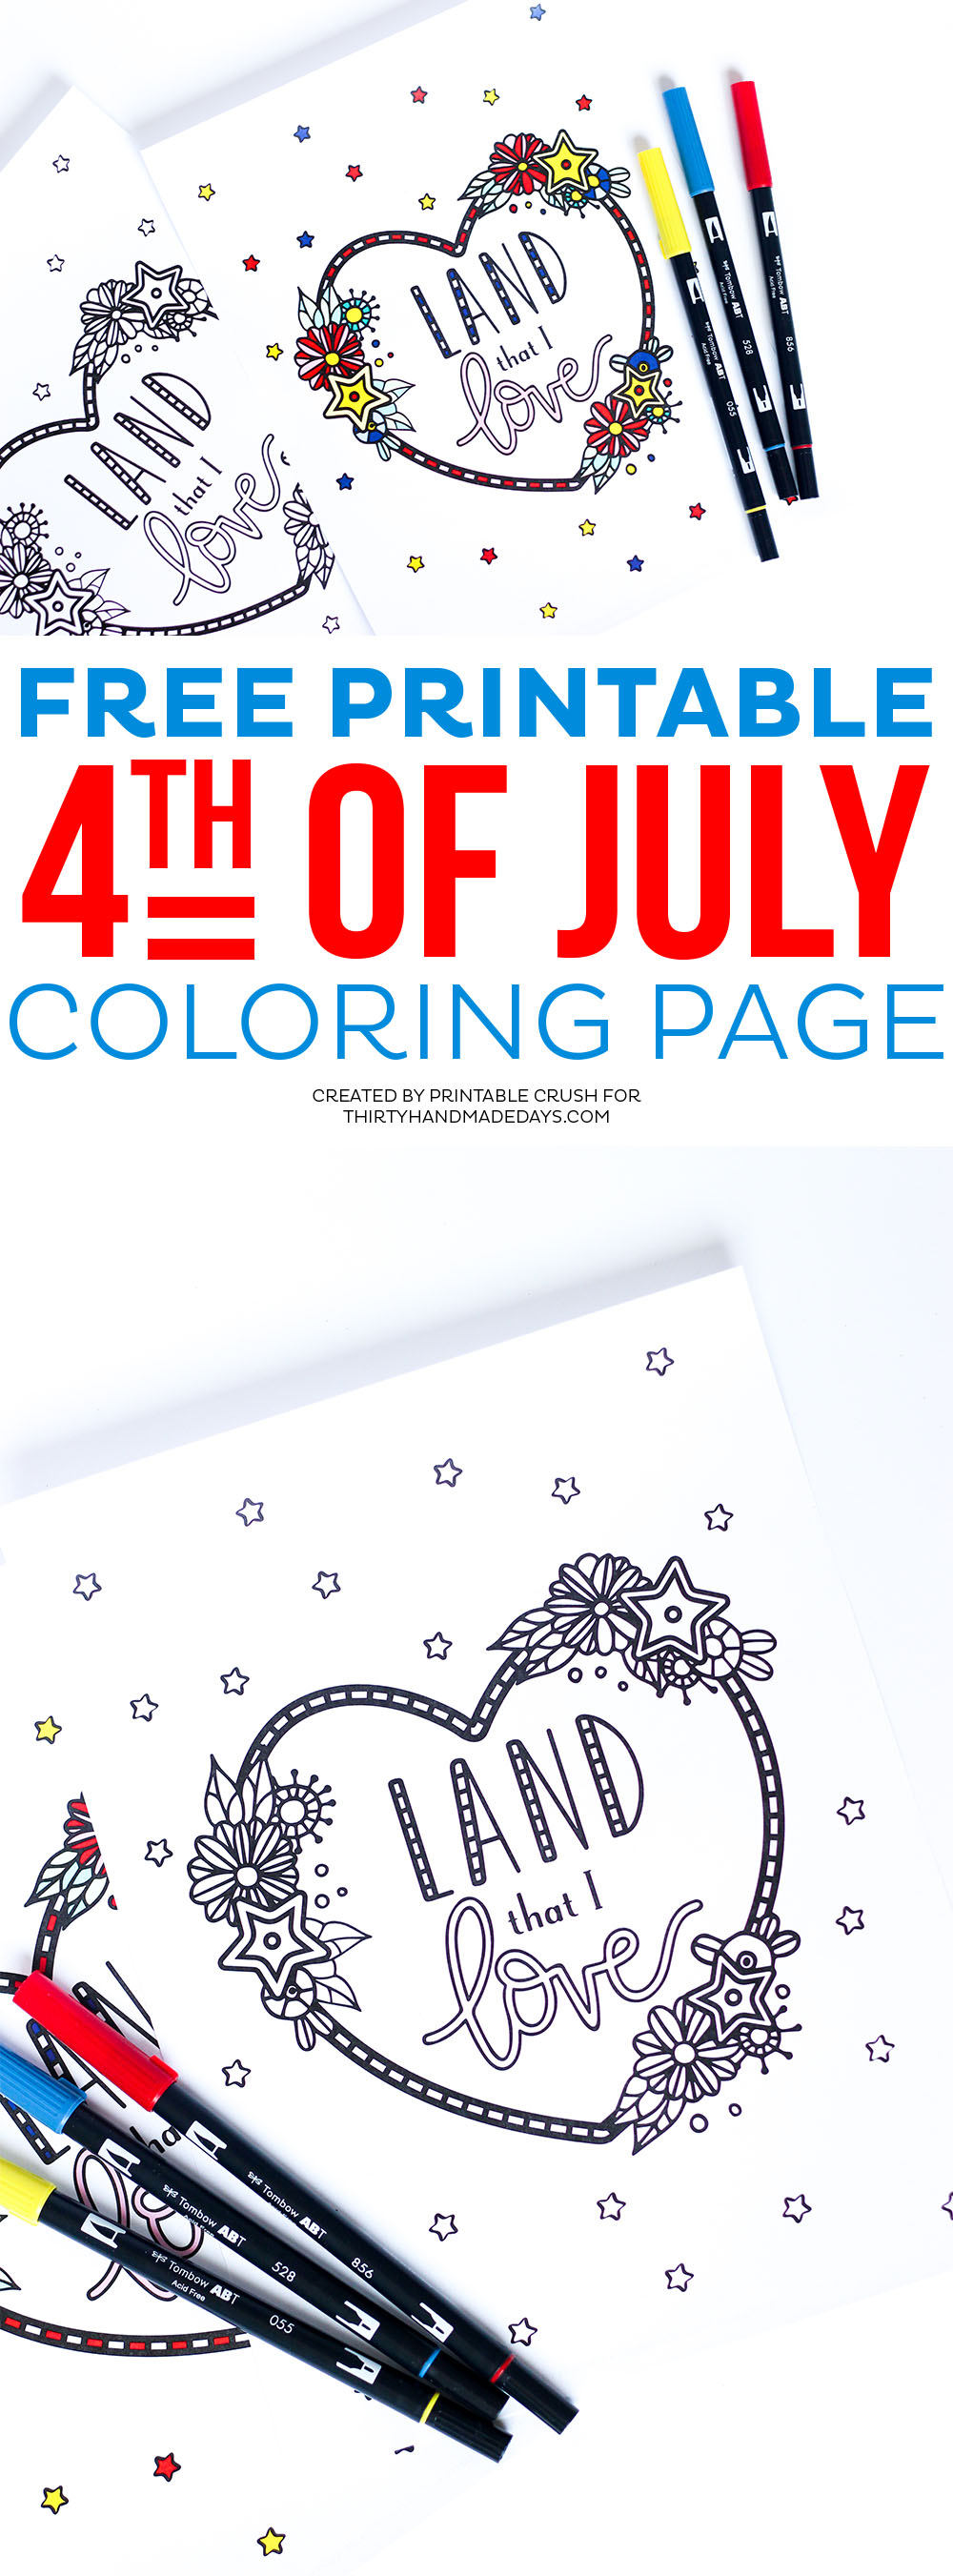 Printable coloring pages july 4th - Download This Pretty Free Printable 4th Of July Coloring Page For Your Kids Or For Guests